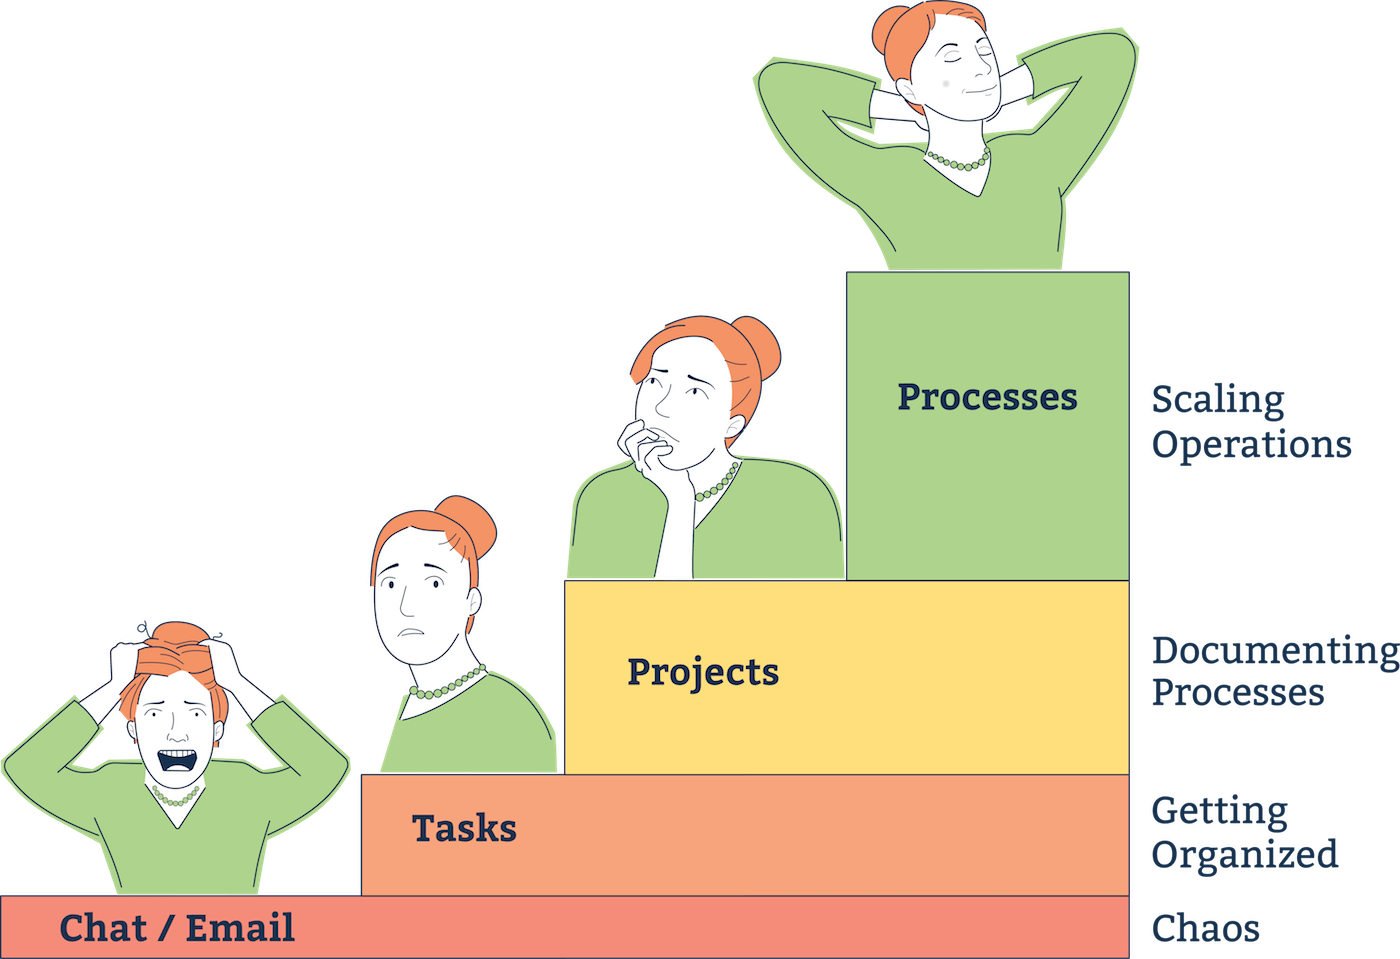 Comparing the value of processes